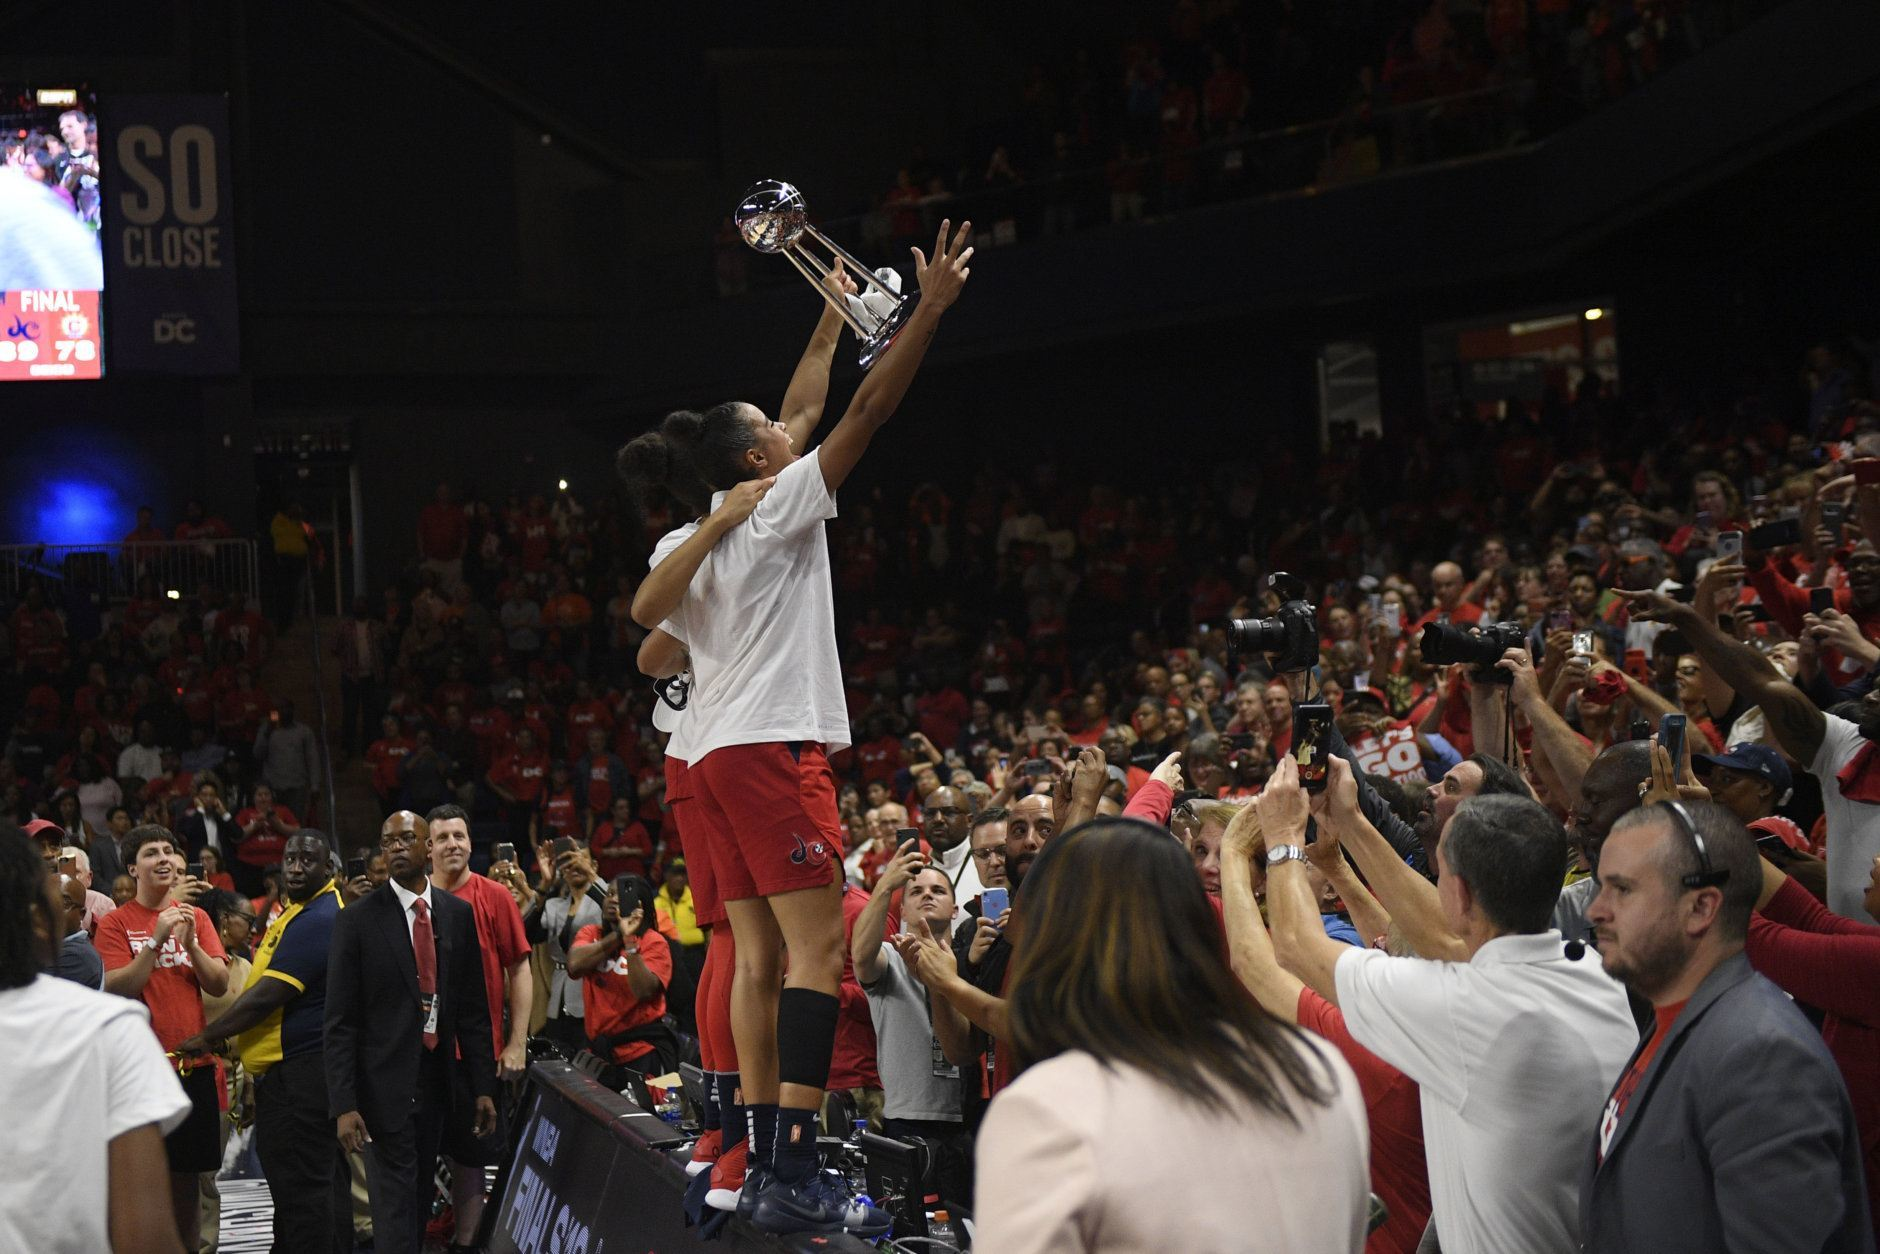 Washington Mystics guard Natasha Cloud raises the trophy to the crowd after Game 5 of basketball's WNBA Finals against the Connecticut Sun, Thursday, Oct. 10, 2019, in Washington. (AP Photo/Nick Wass)